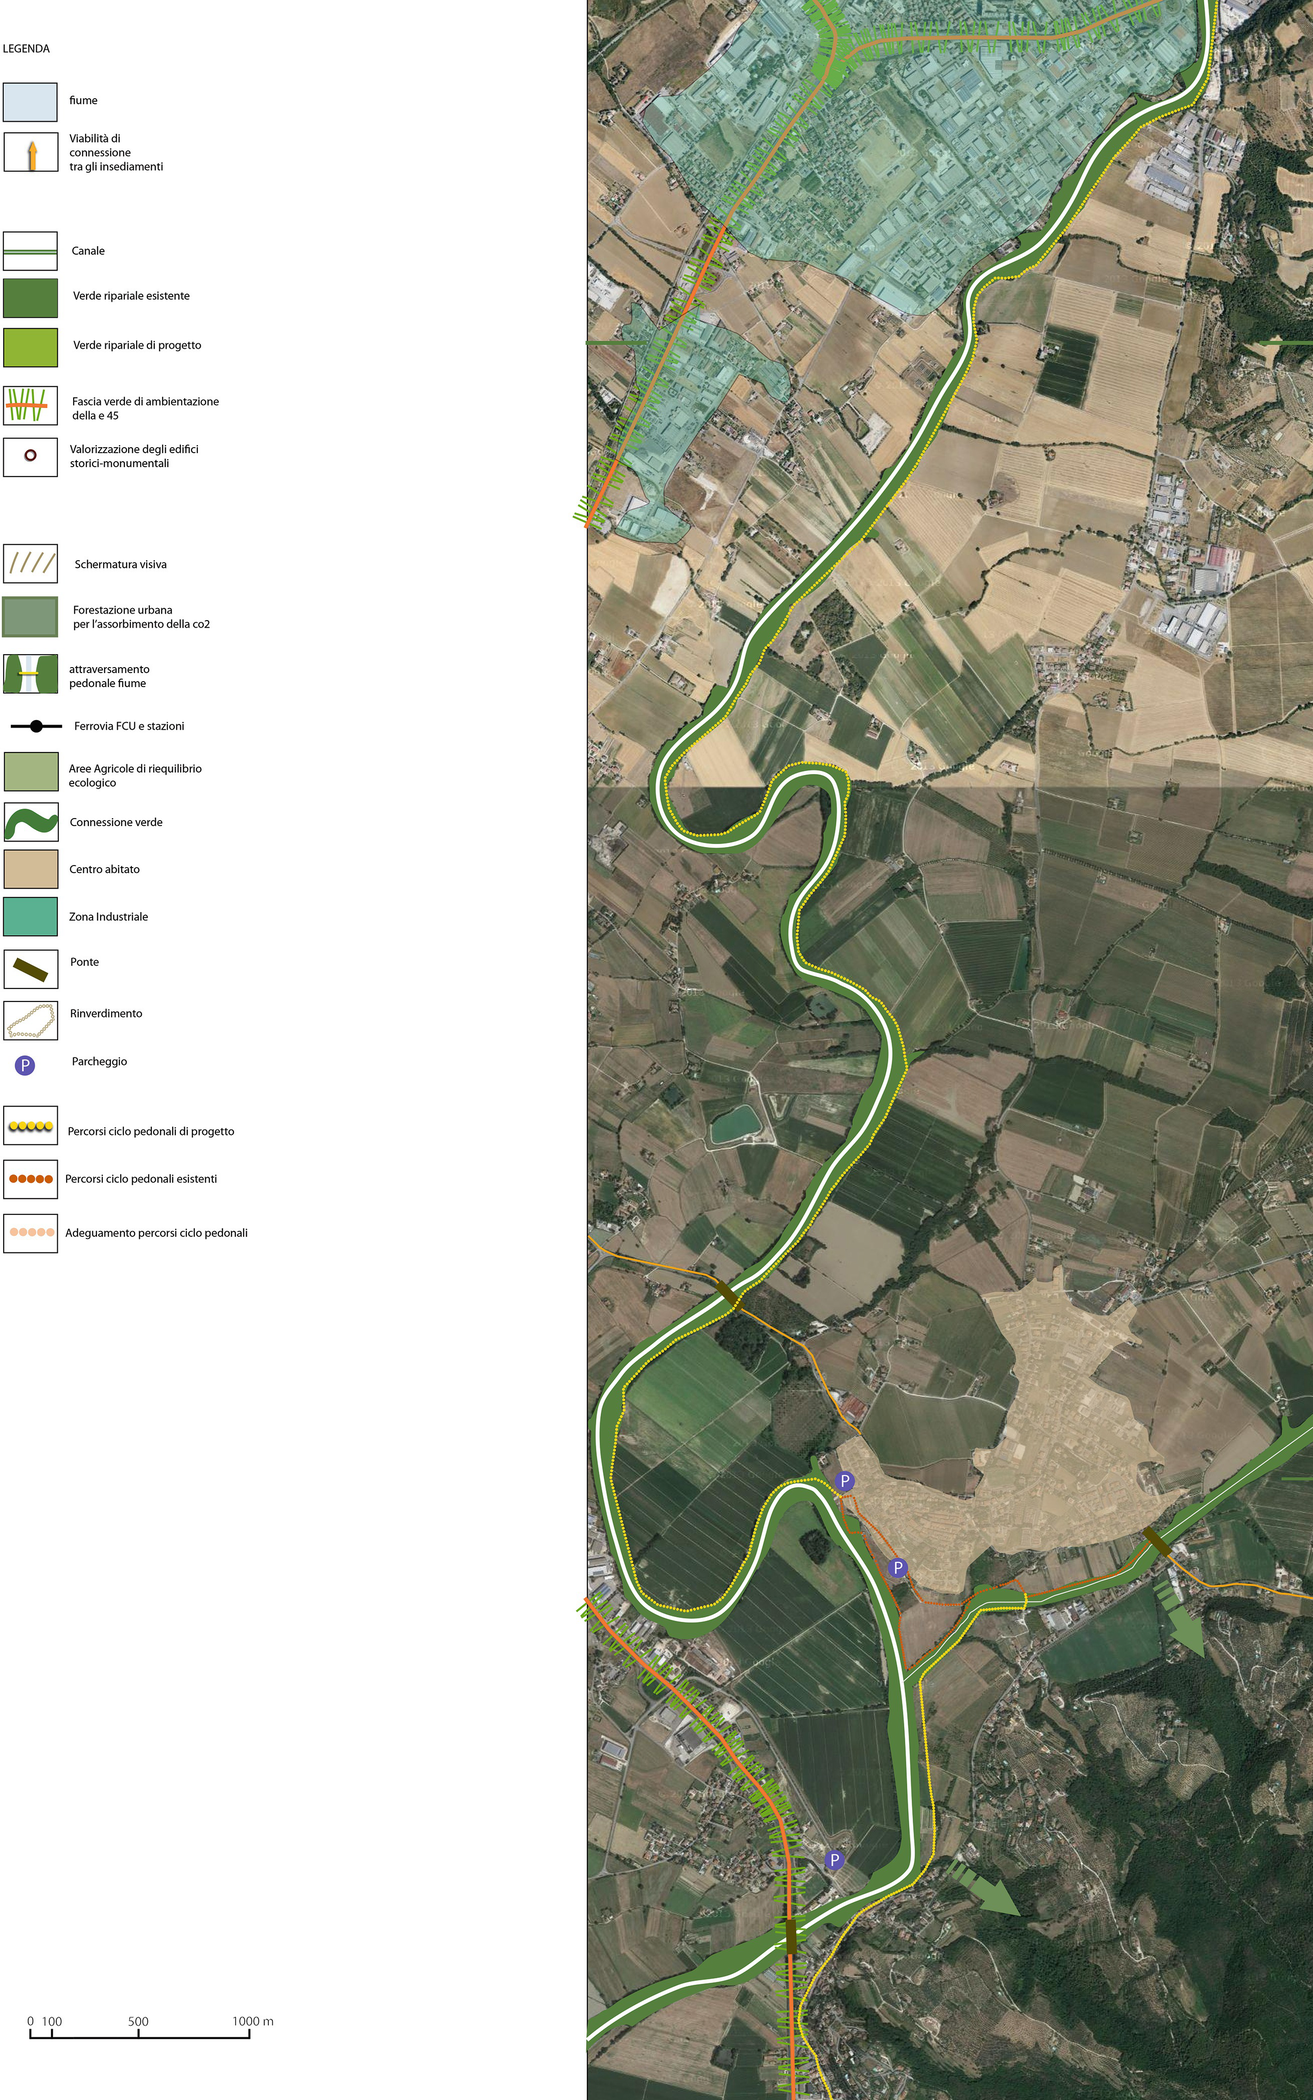 Landscape and Natural Resources: Green Infrastructure and